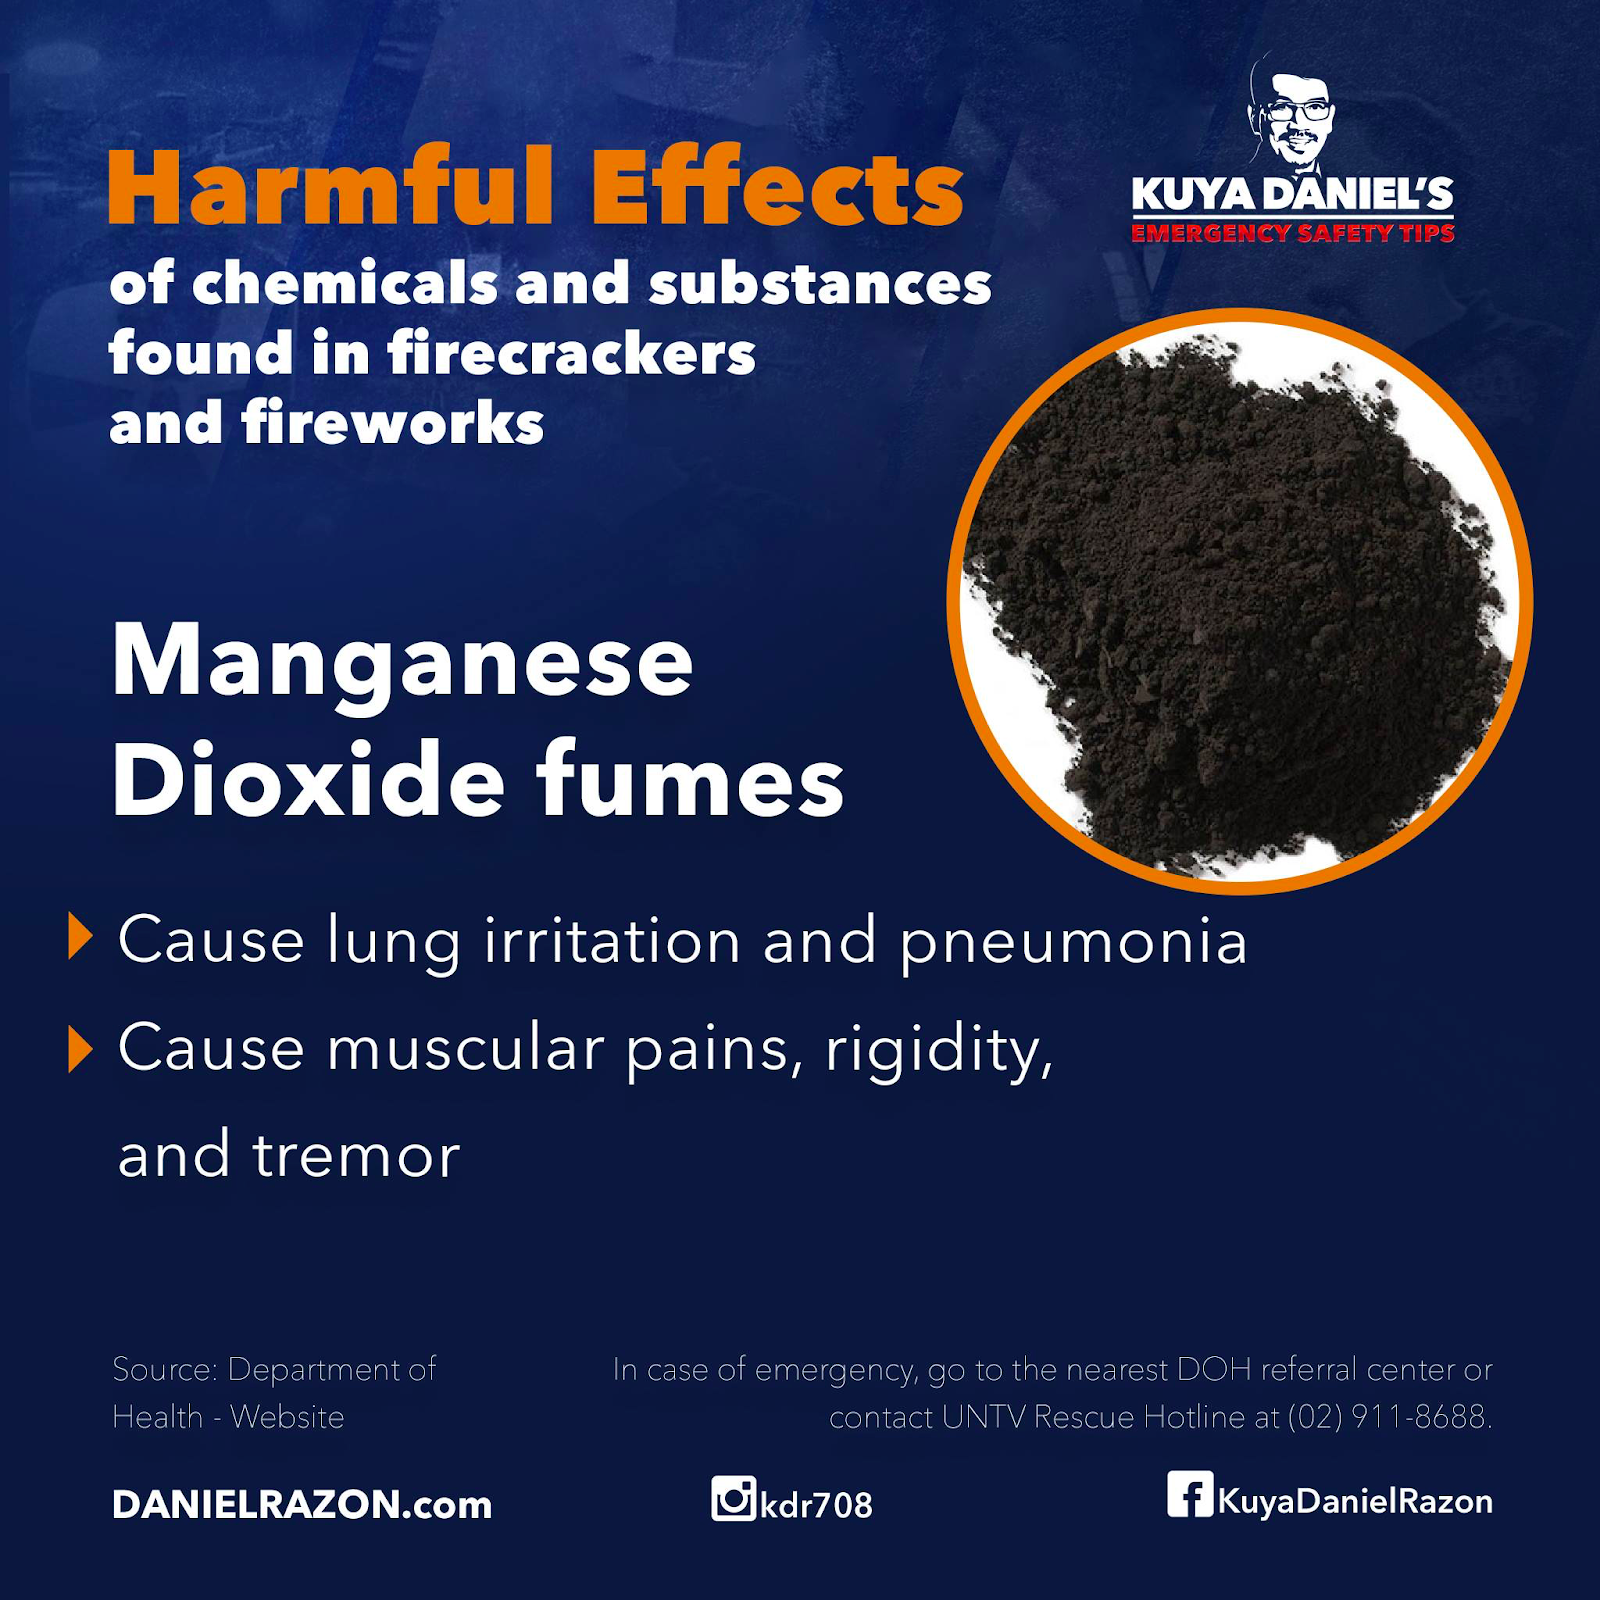 manganese dioxide fumes side effects in humans